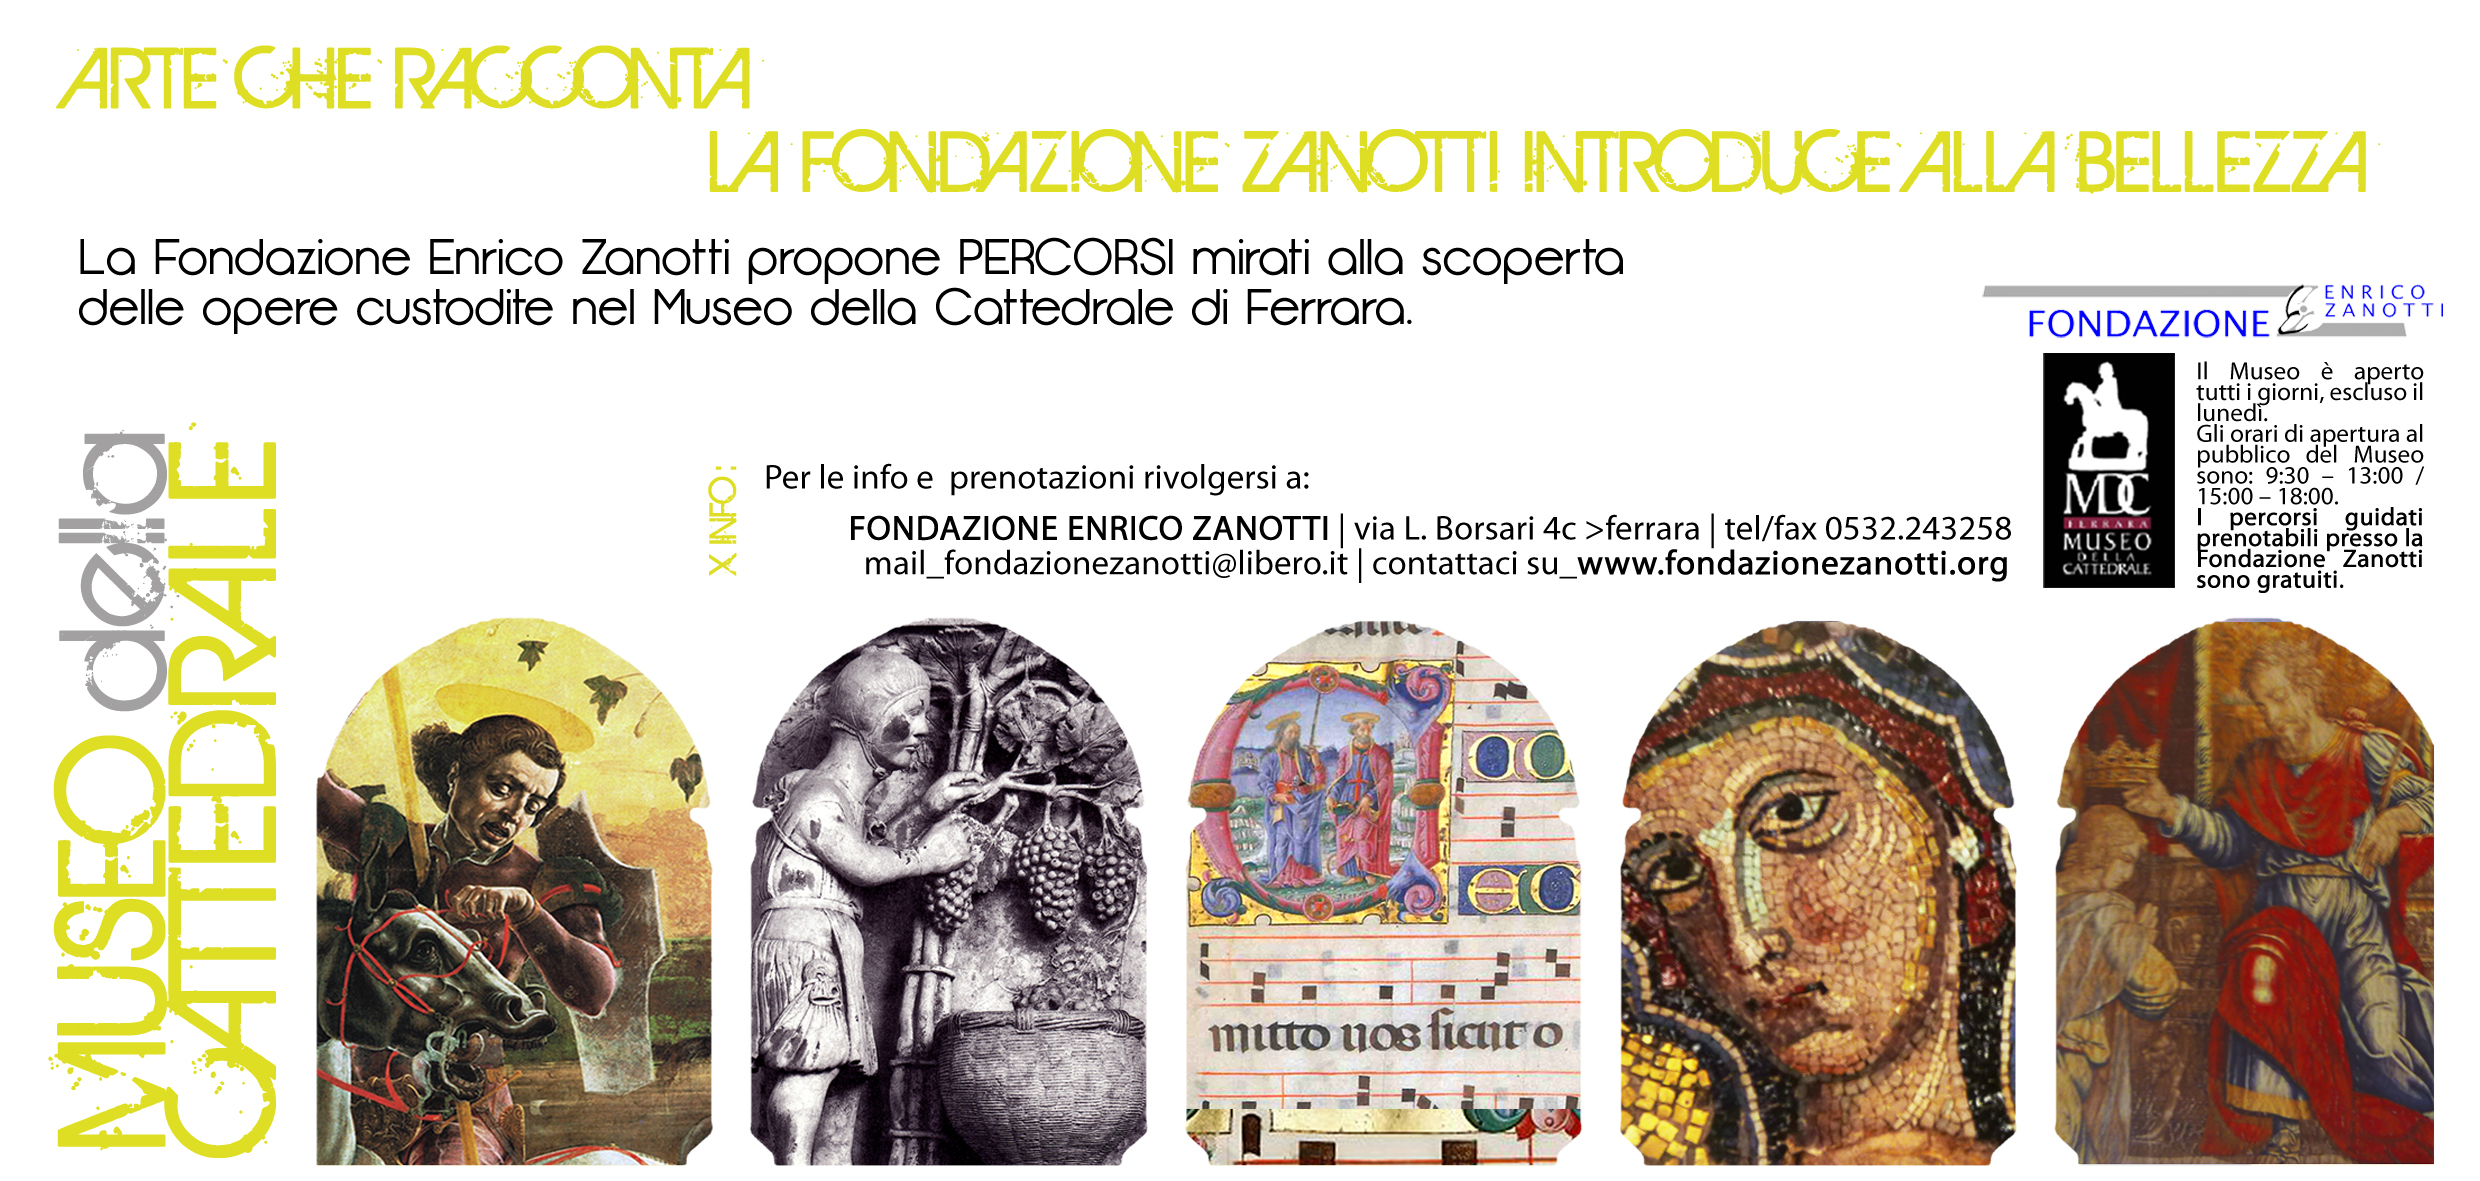 2013-14 FRONTE